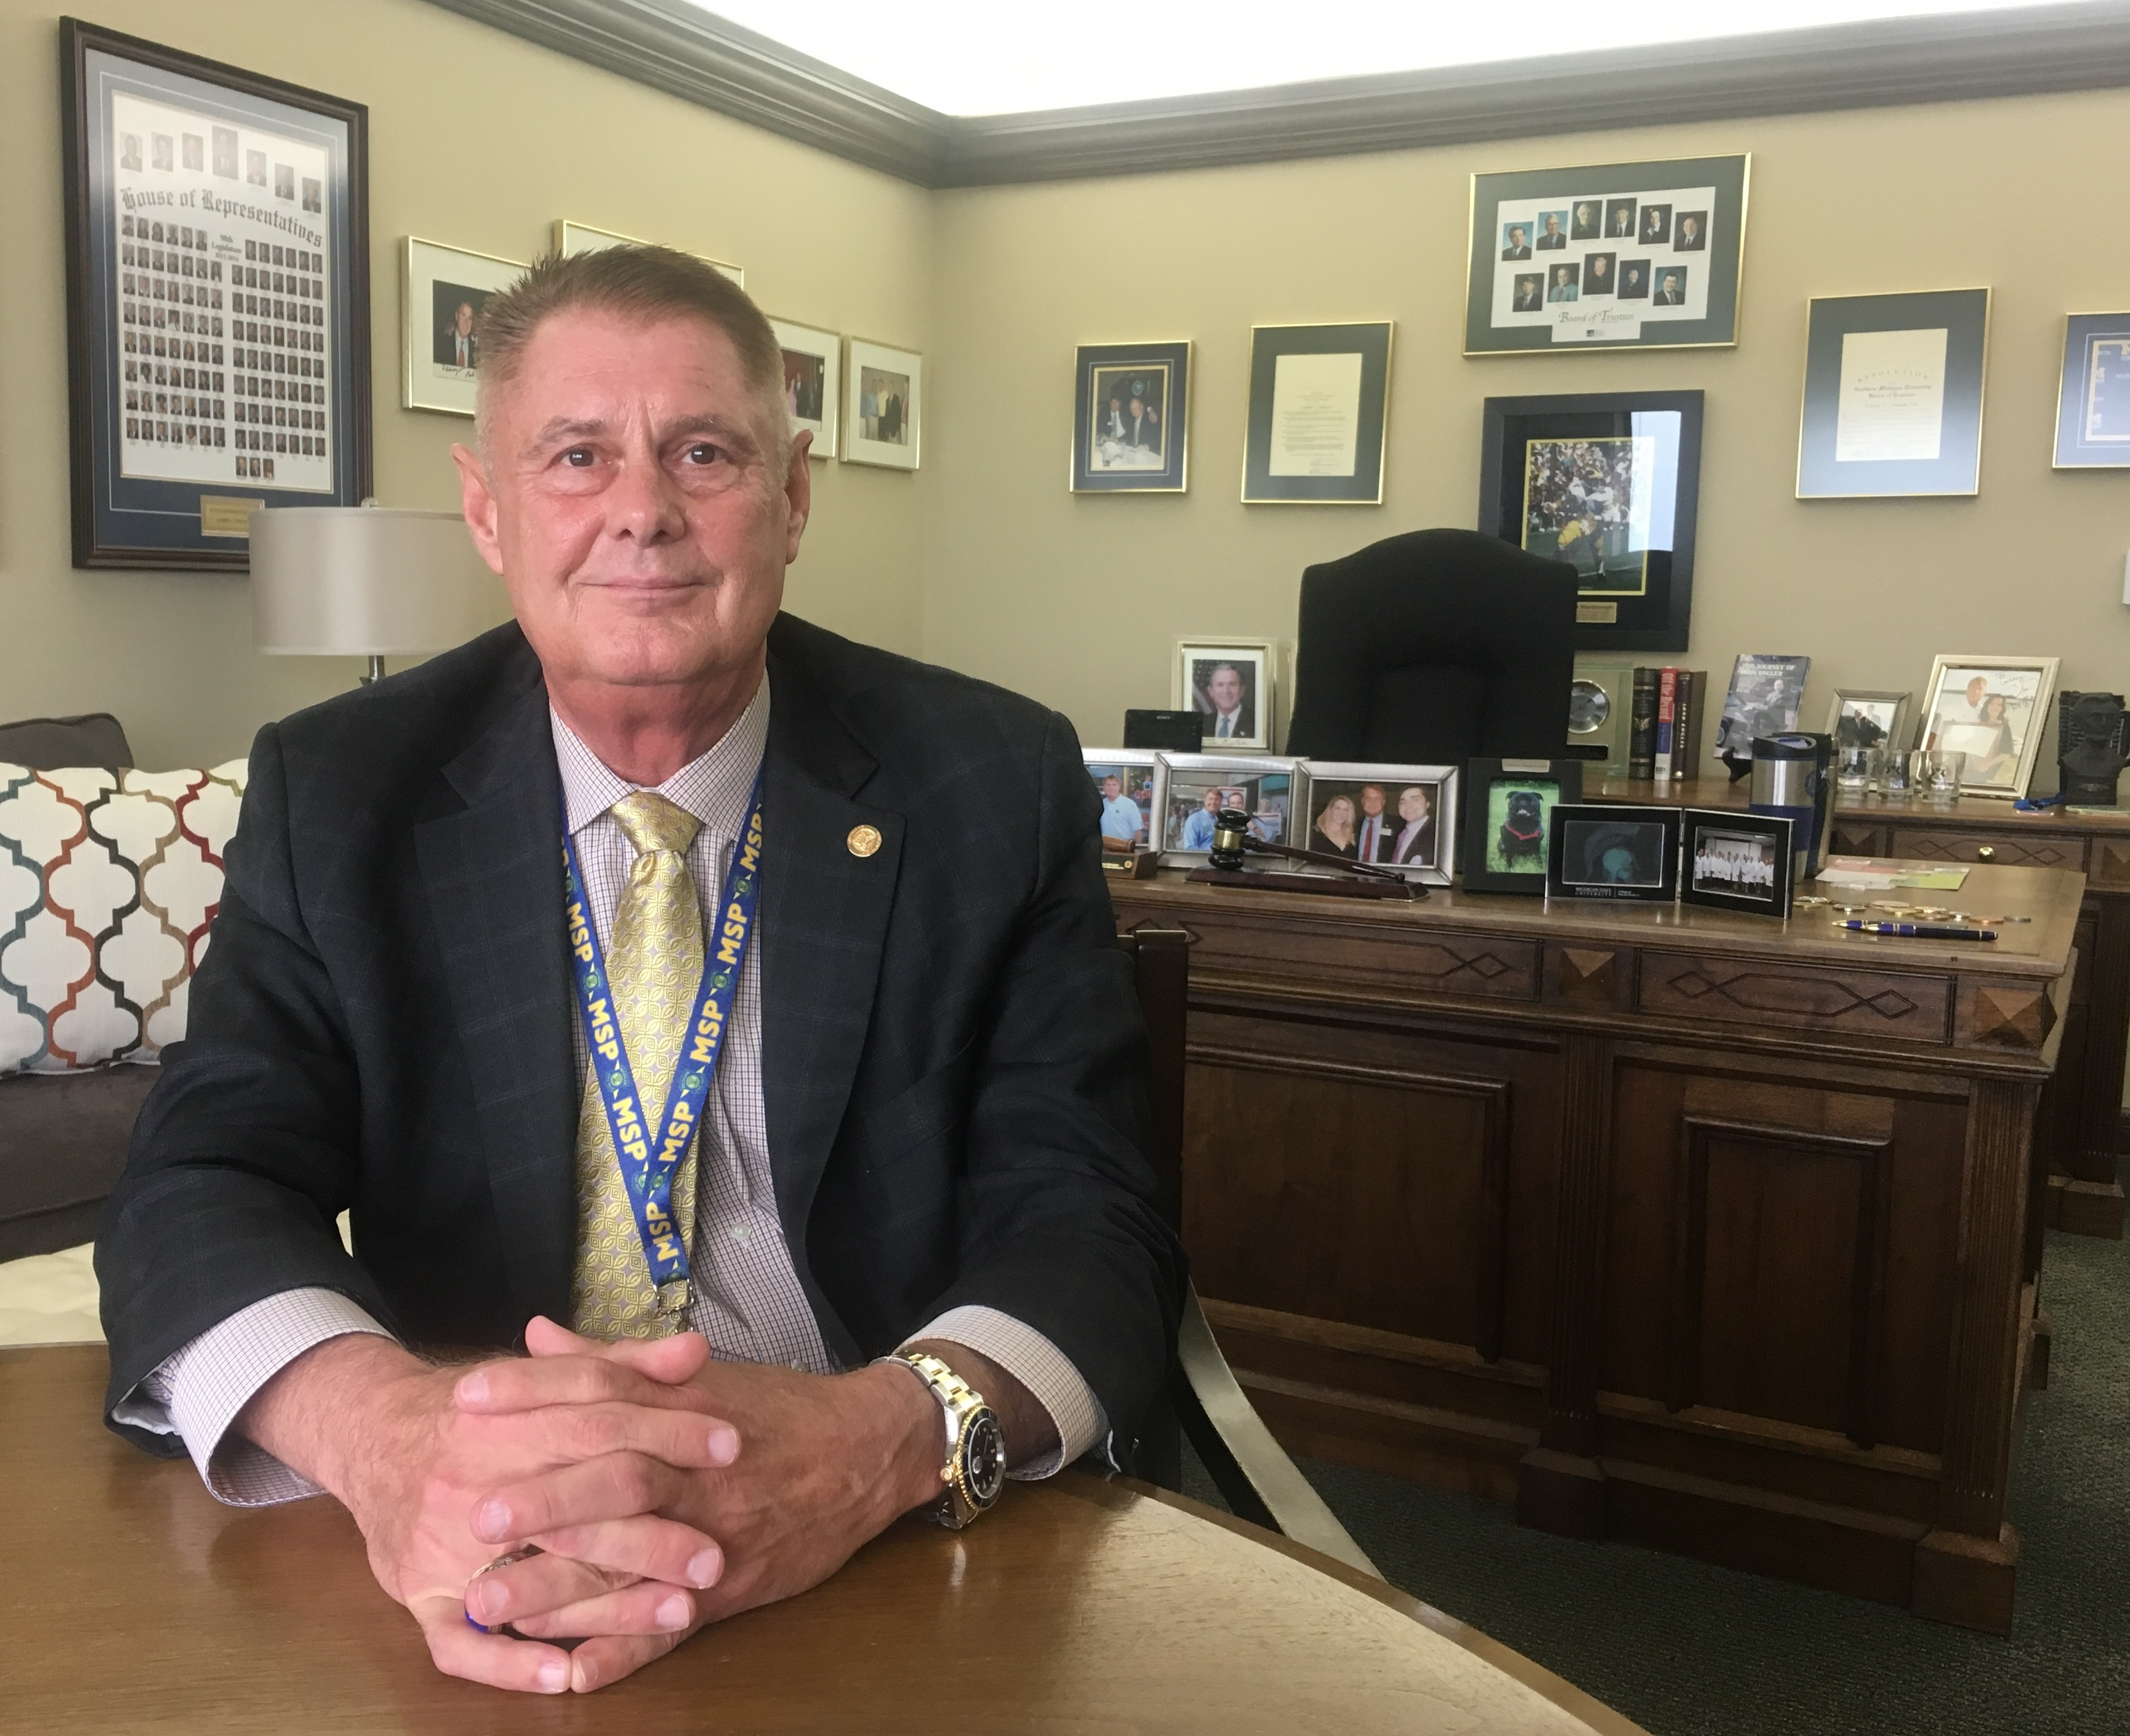 FBI searched residence of Michigan lawmaker accused of bribery: records